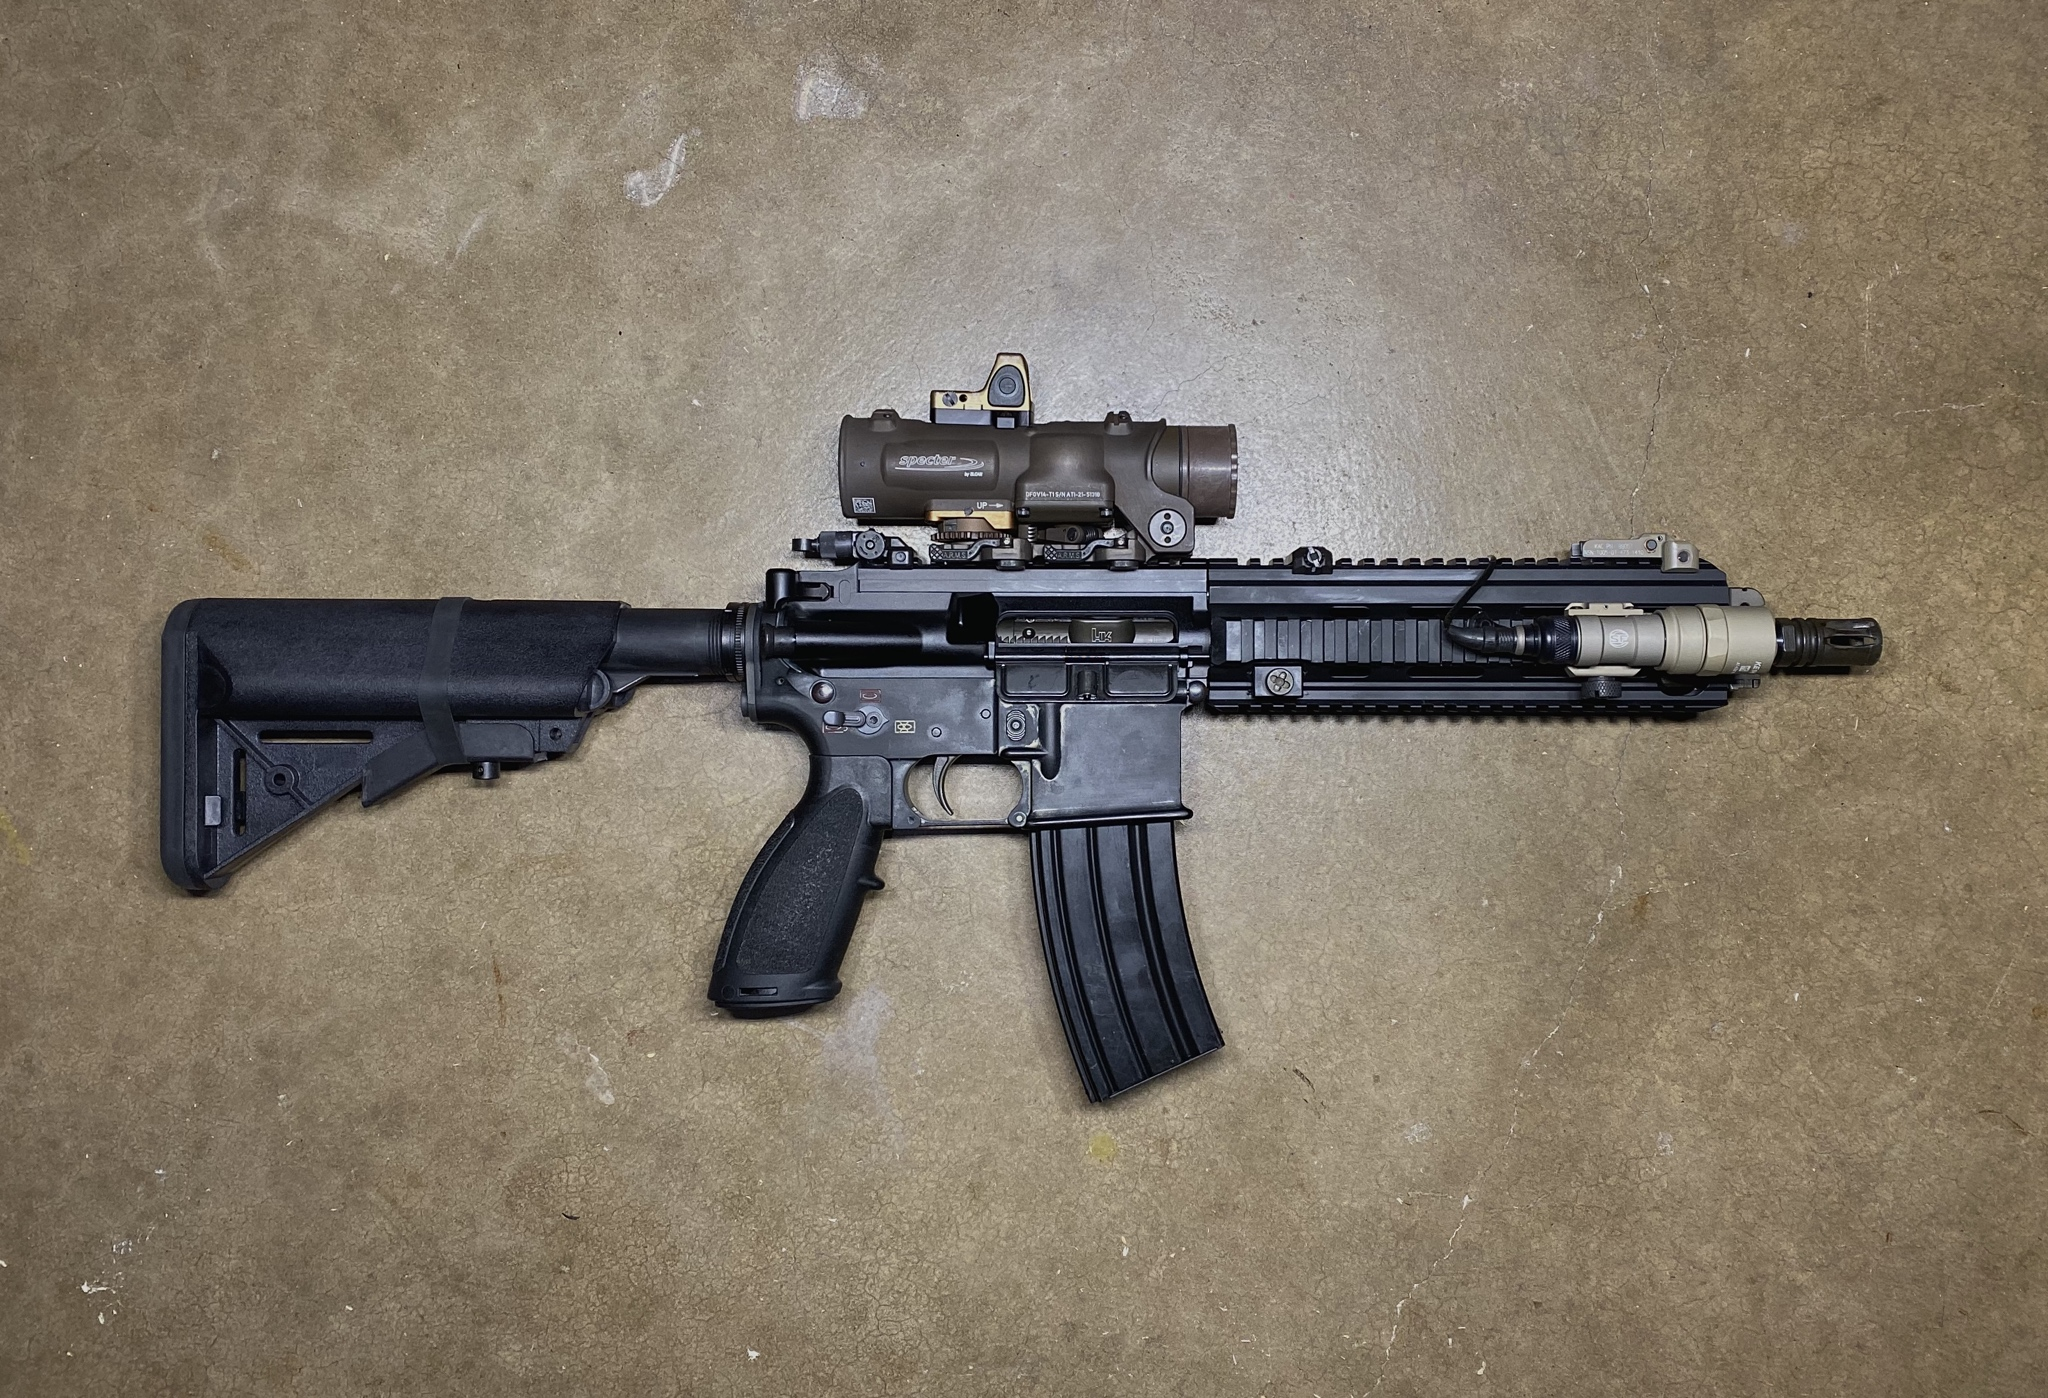 HK416 Owners Picture Thread (genuine HK416's only please)-quljdh2.jpg